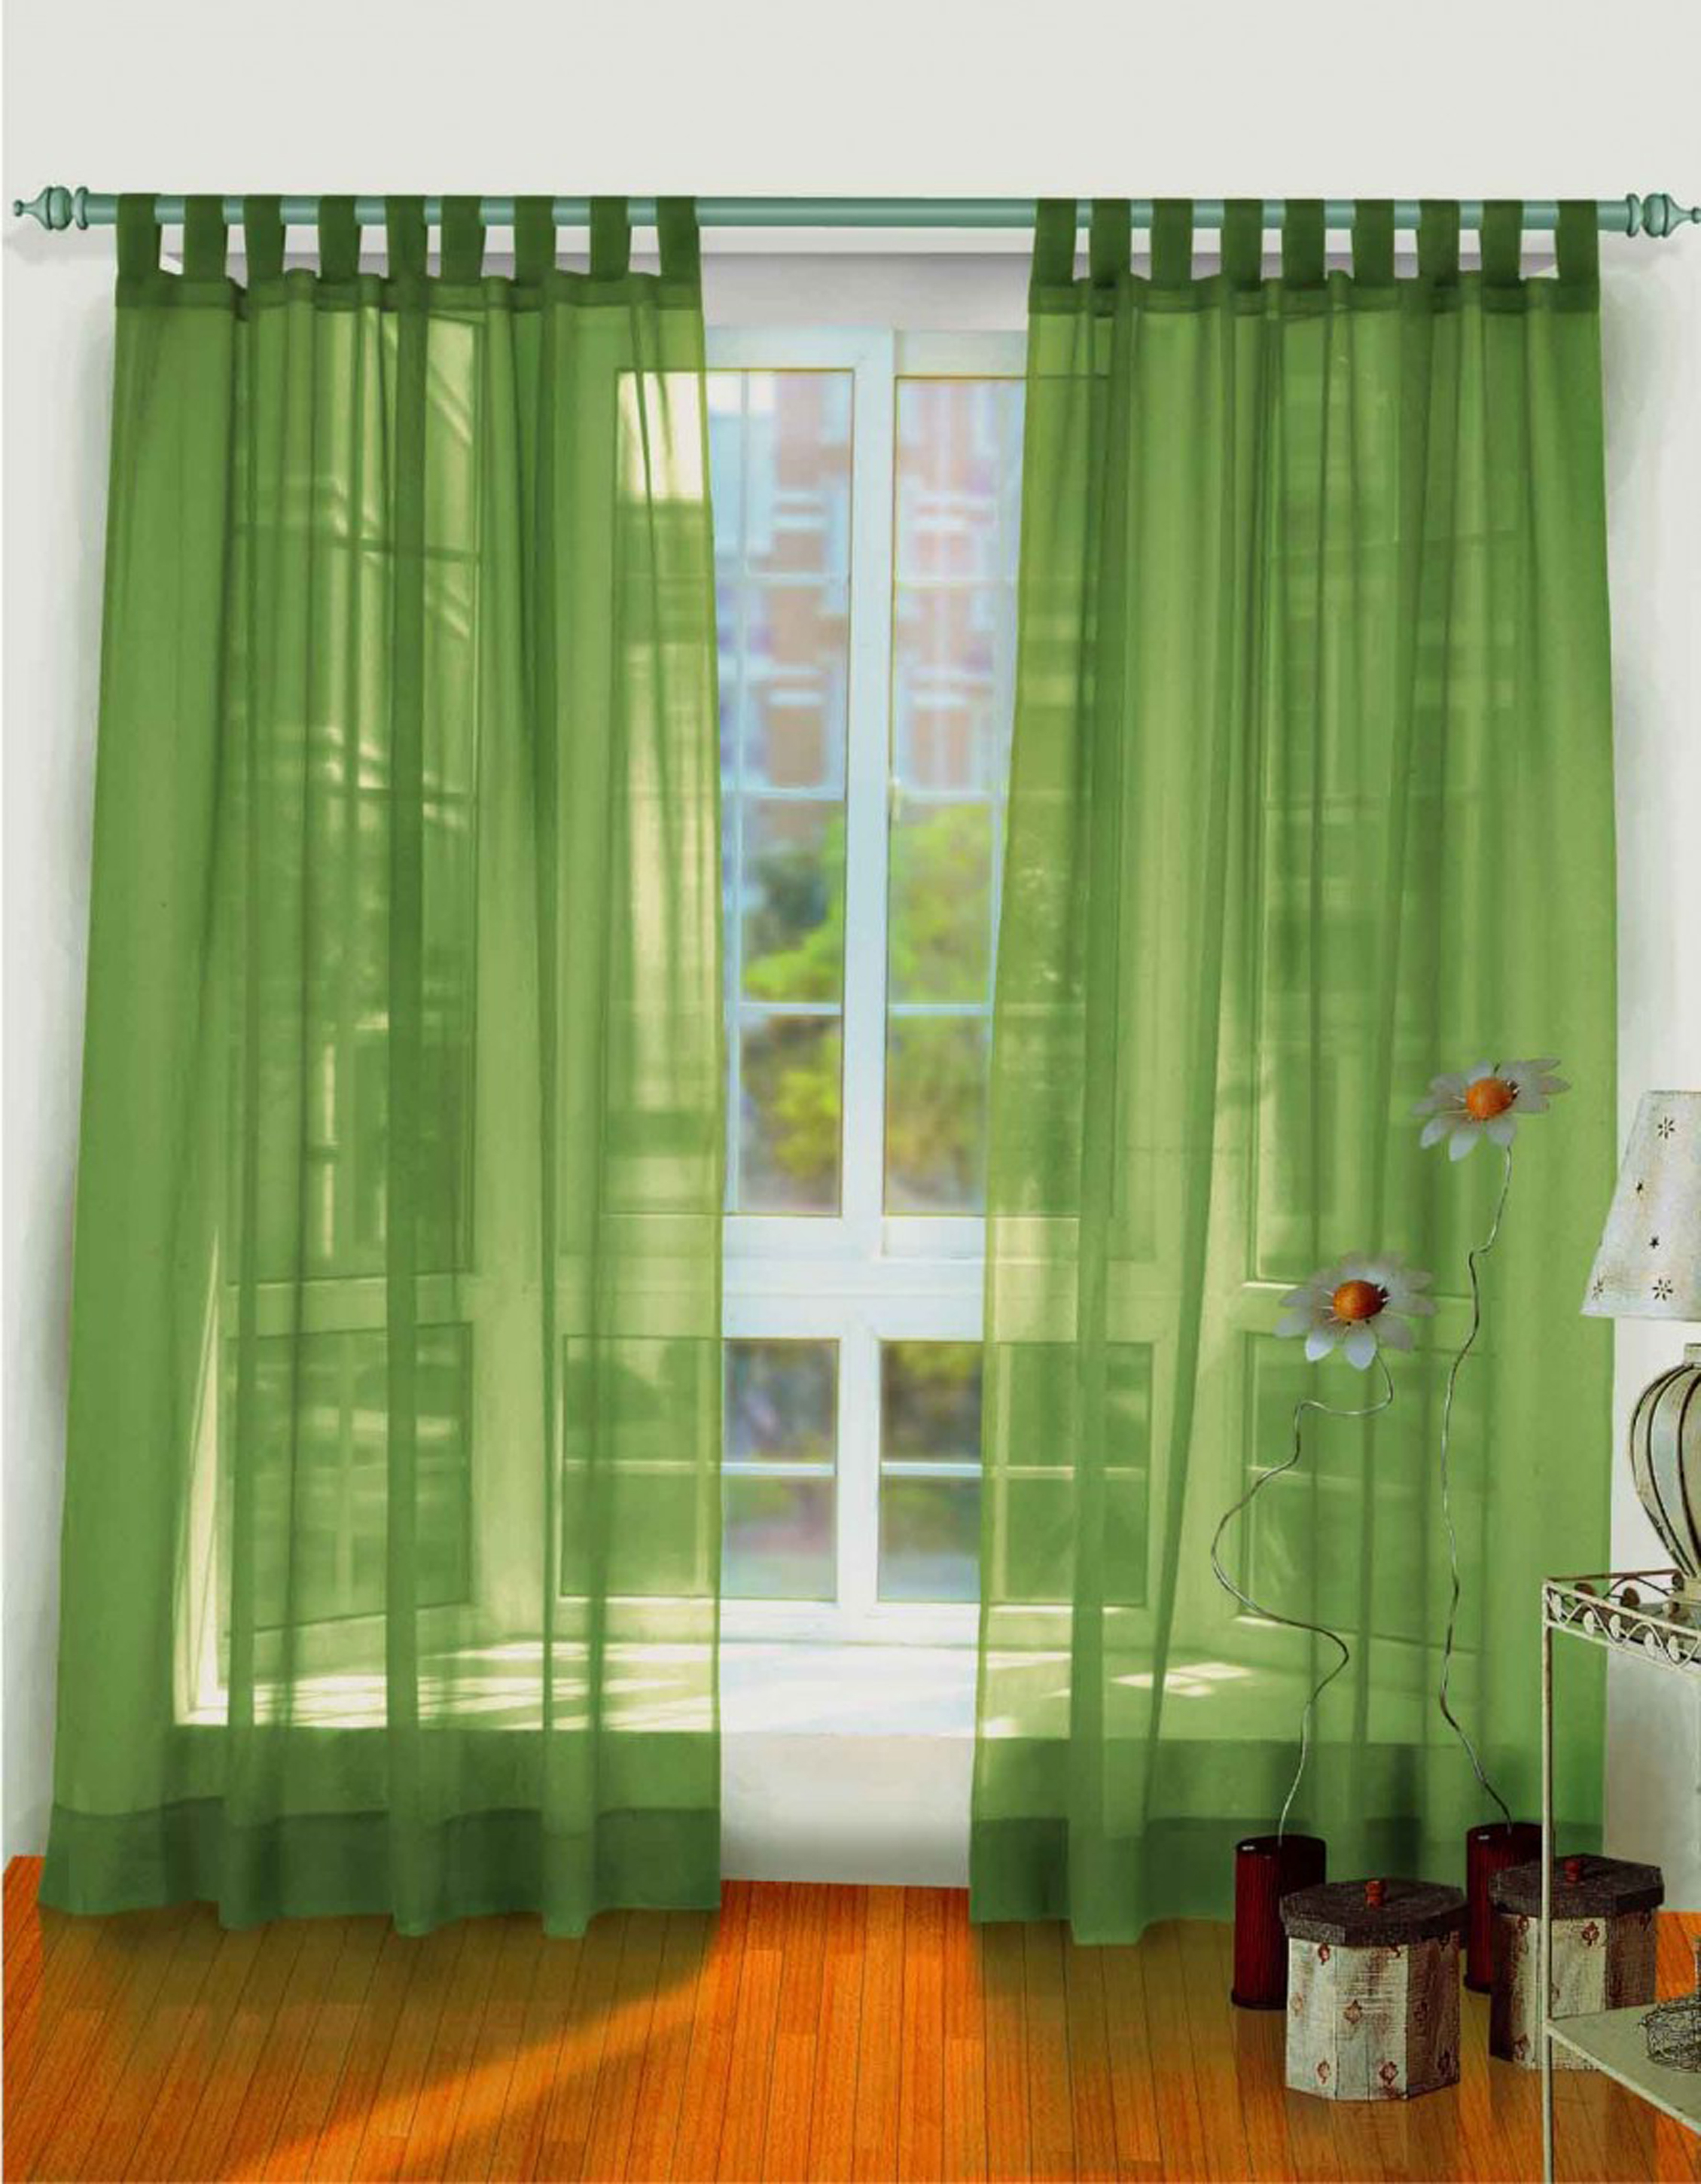 Minimalist Green Window Curtain Design Idea With White Window Frame Luxurious Window Curtain Design Ideas (View 6 of 25)